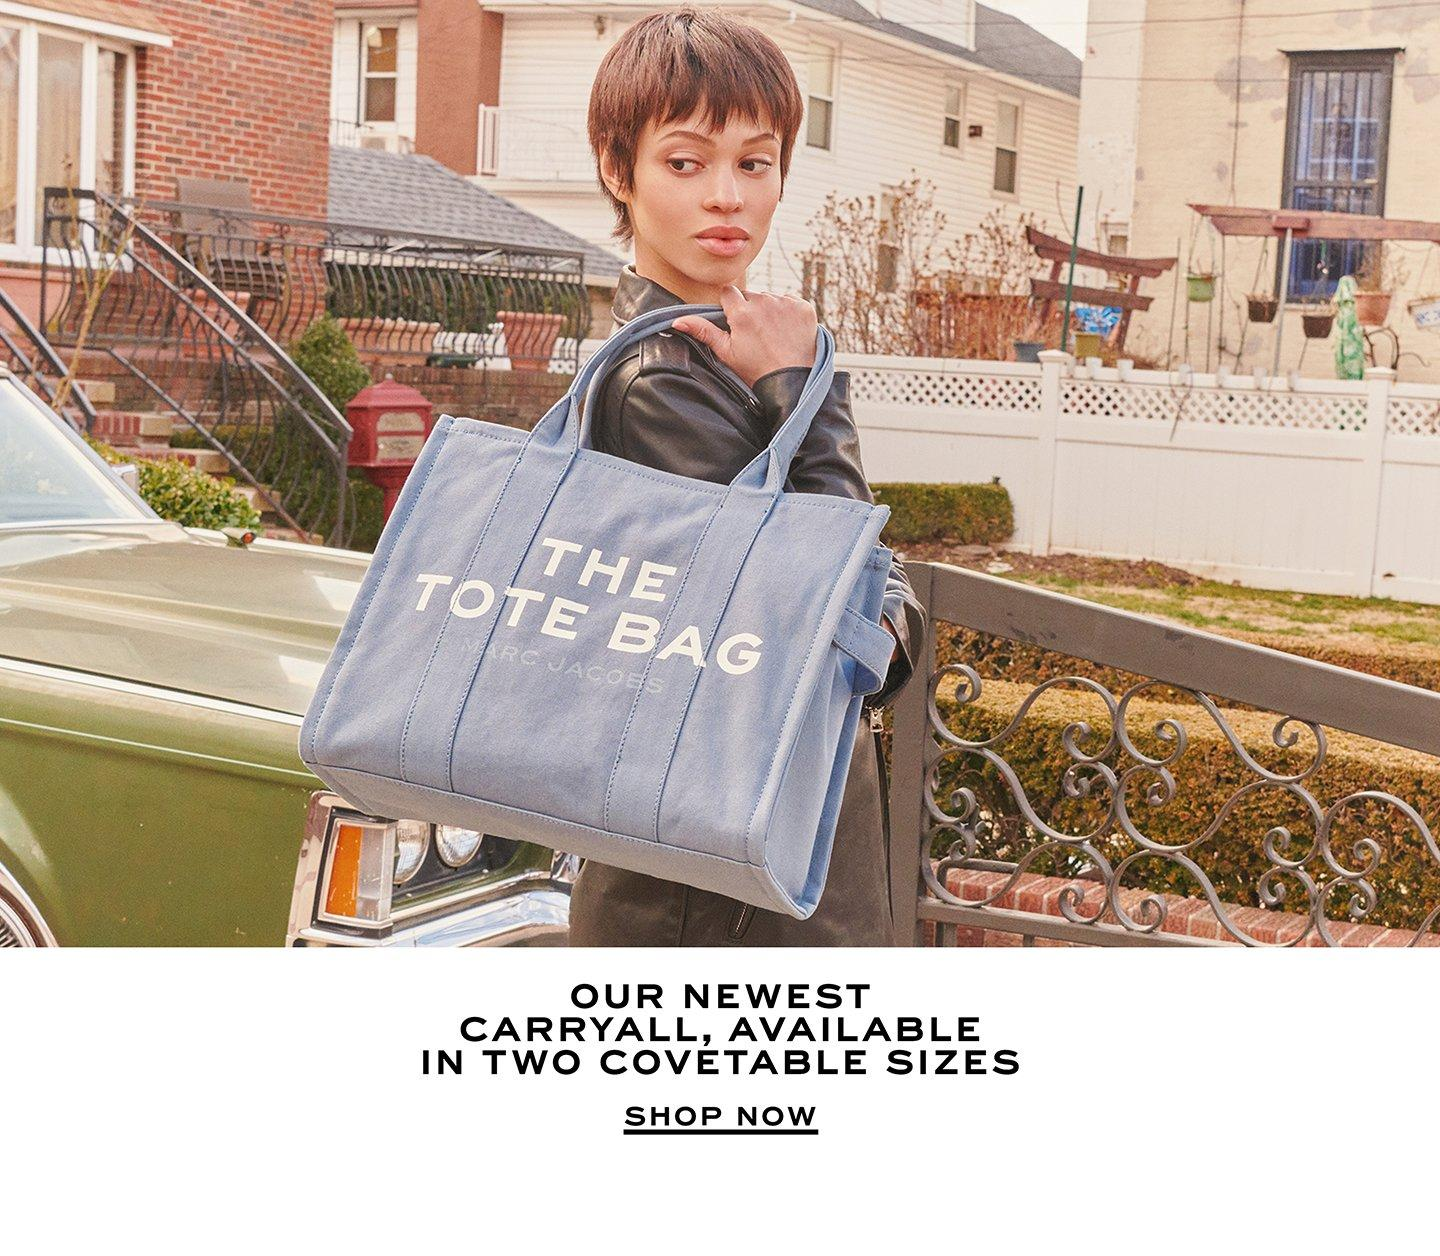 Our newest carryall, available in in two covetable sizes. Shop Now.